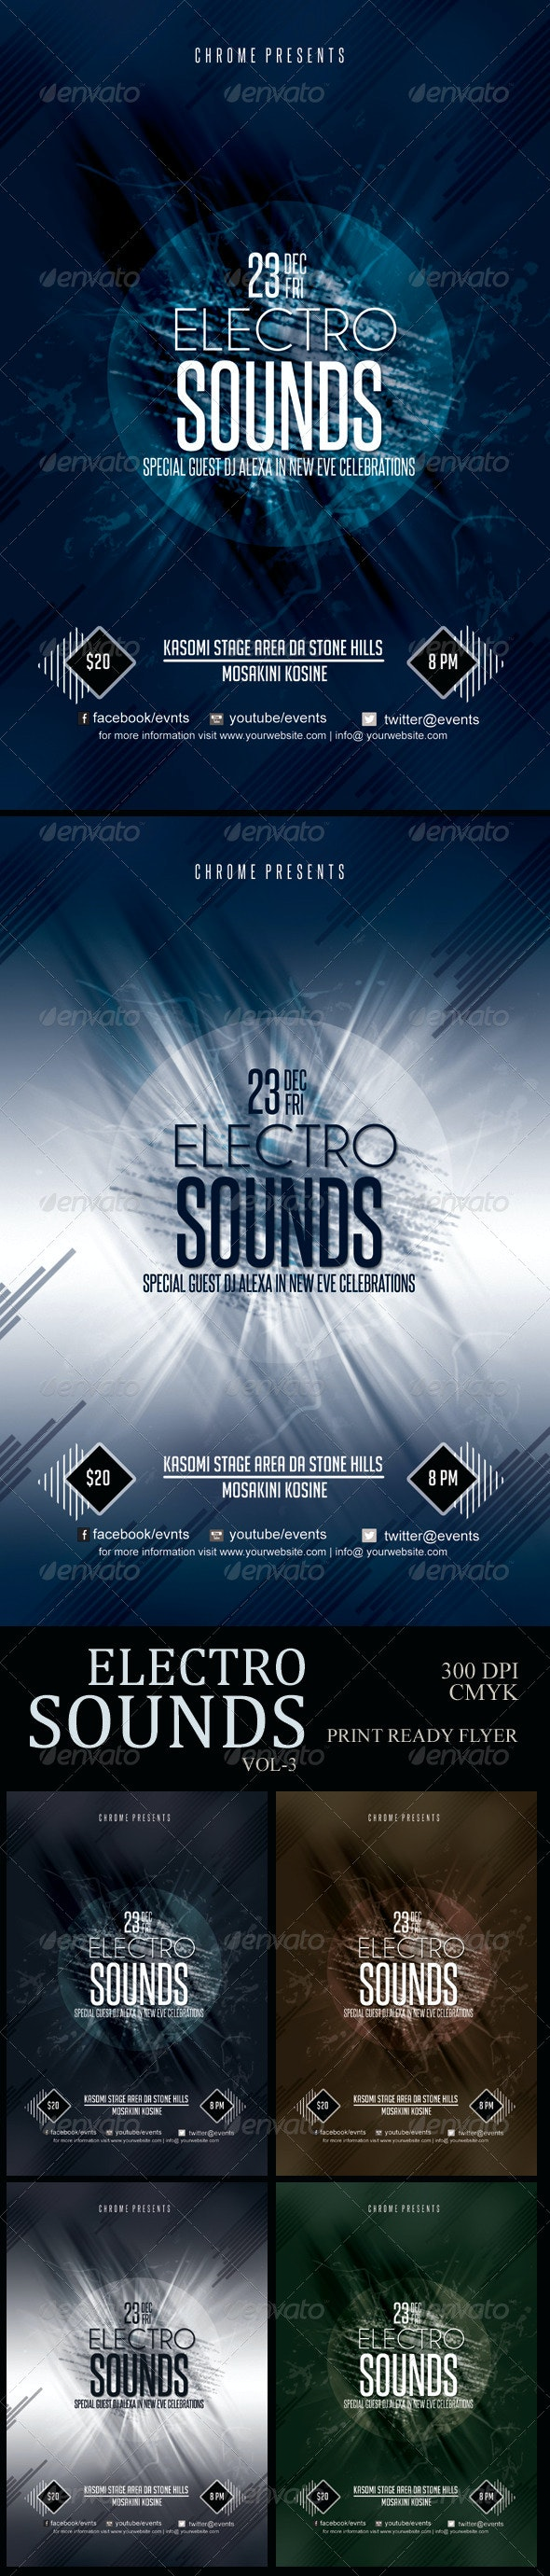 Electro Sounds Futuristic Flyer 3 - Clubs & Parties Events